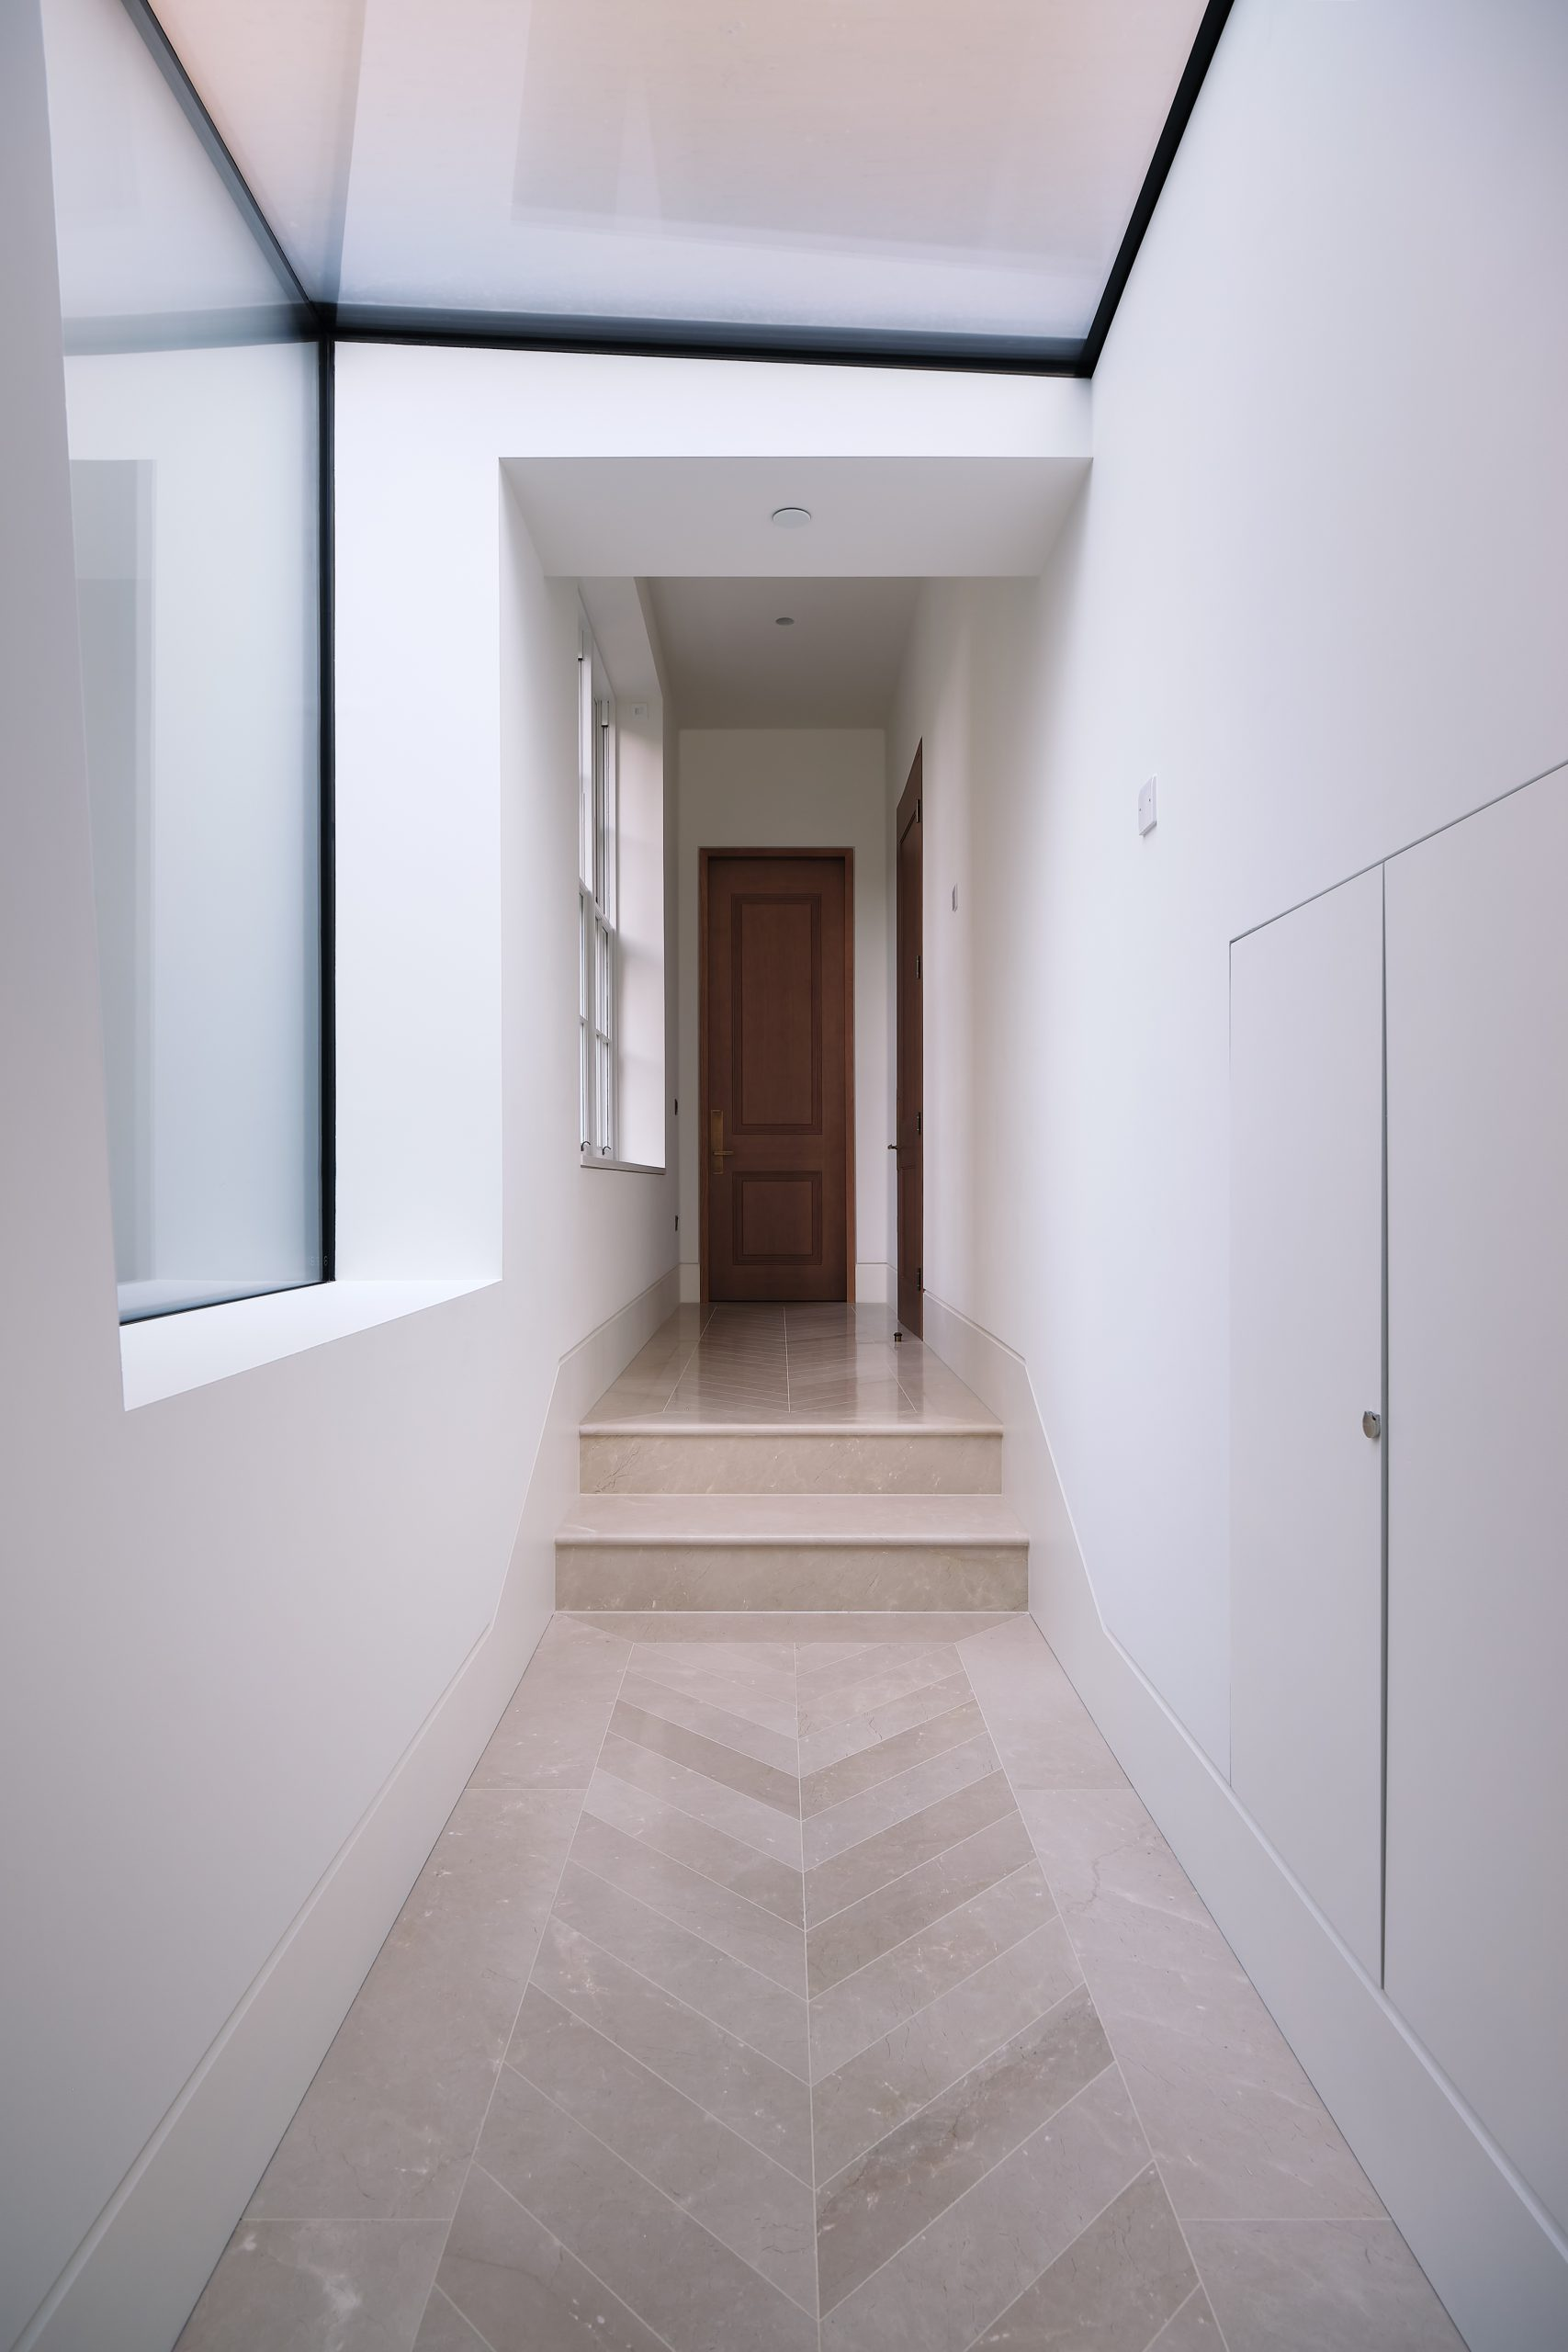 structural glass in hallway